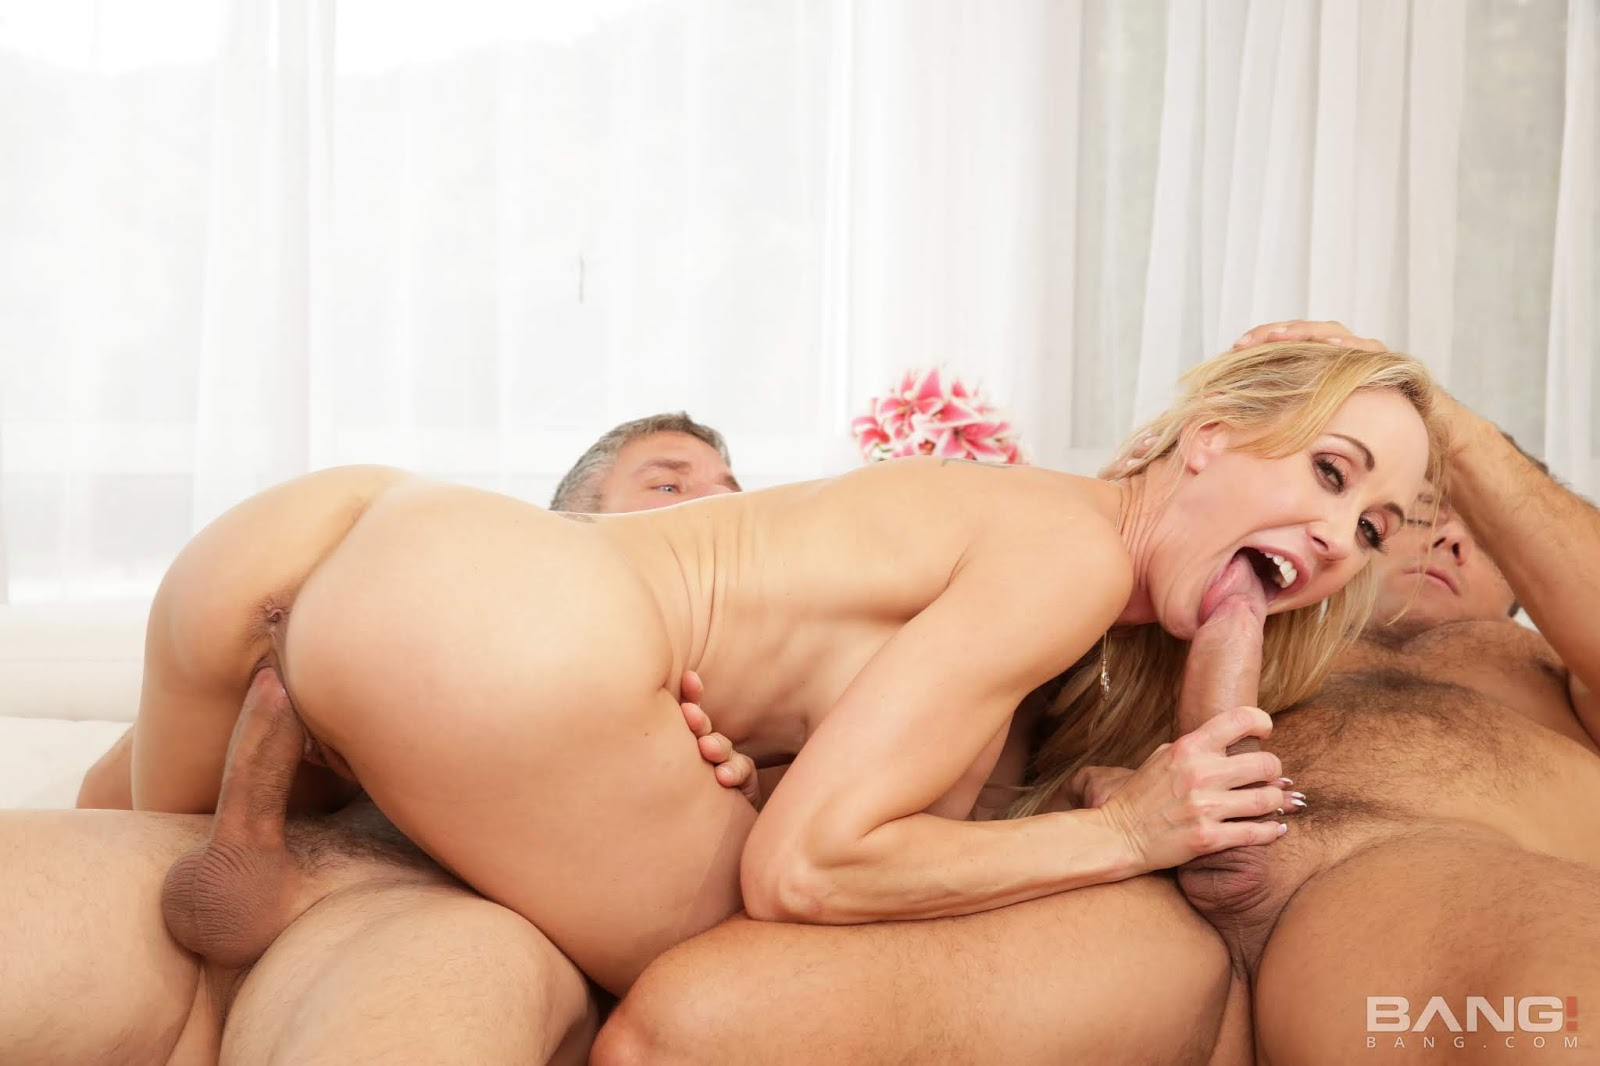 Watch Porn Images And Pics Tagged With Brandi Love